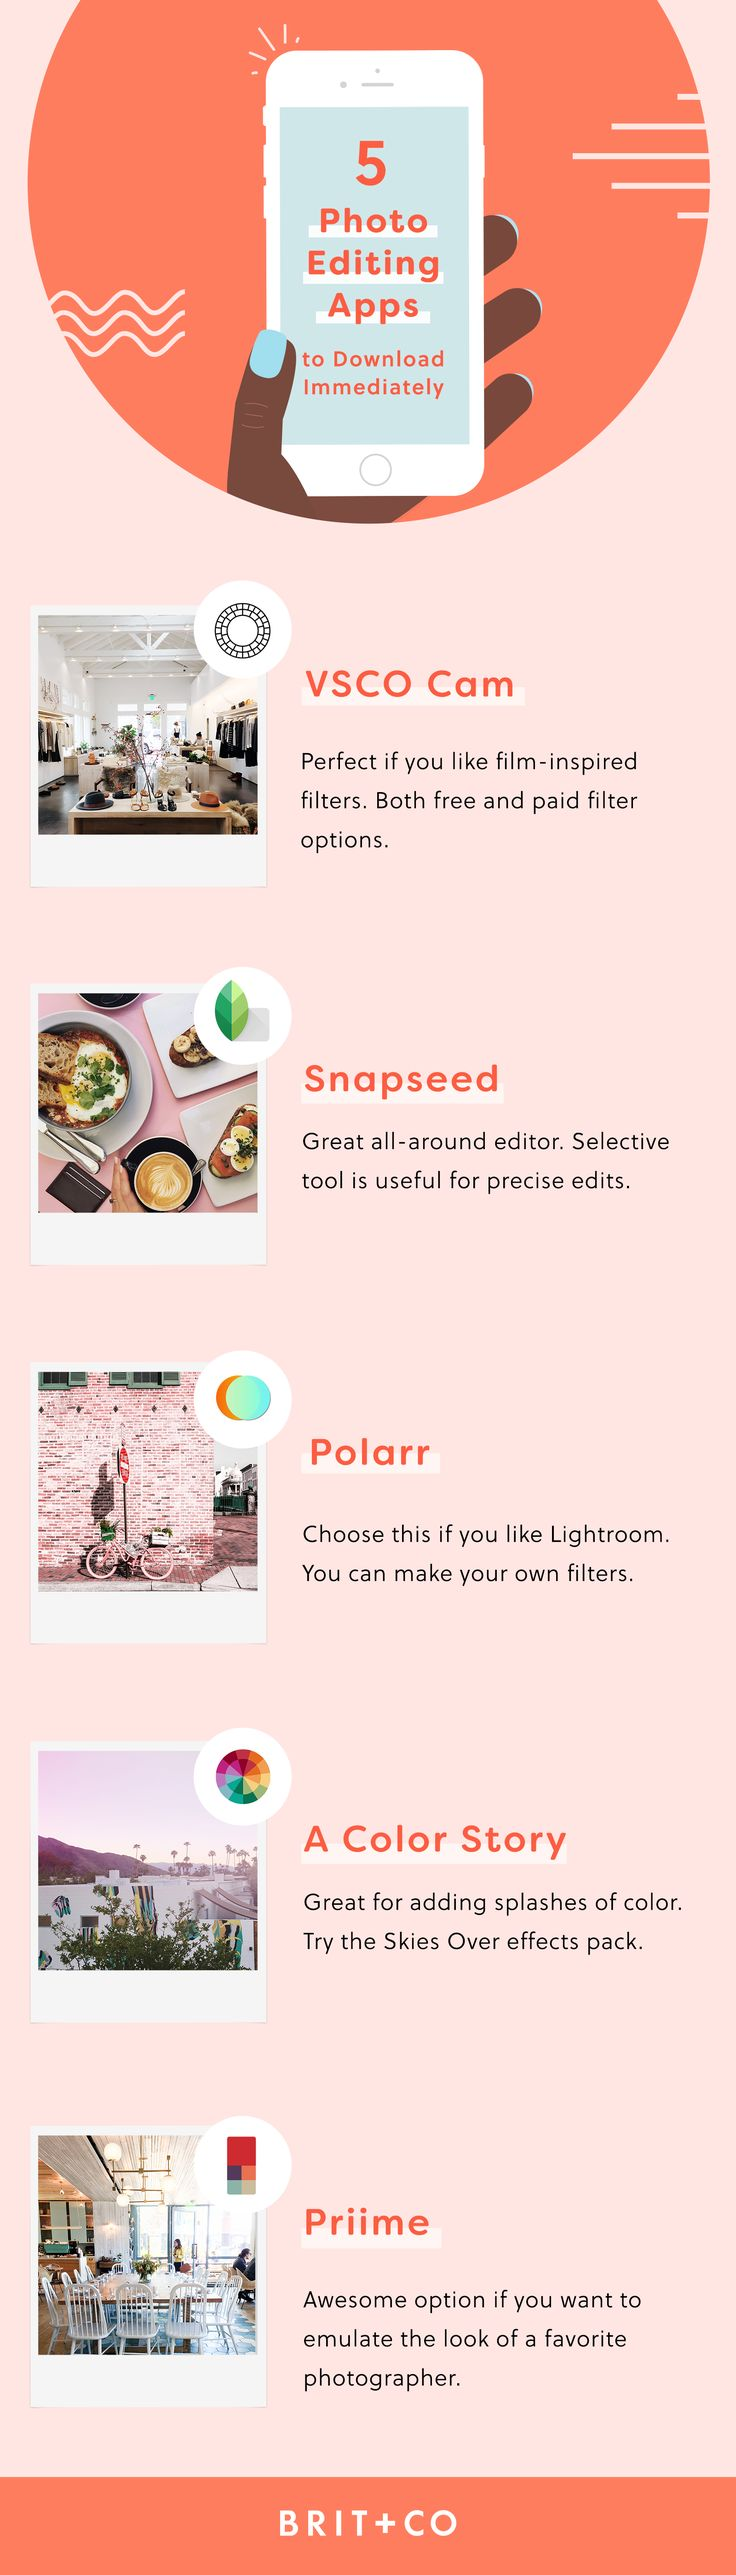 Wondering which photo editing apps you should be using and how to get the most out of them? You should try this Brit + Co online class. In this course, you'll learn how a professional photographer uses 5 of the leading apps (VSCO Cam, Snapseed, Polarr, A Color Story, and Priime) to edit photos on her phone for maximum Instagram likes.